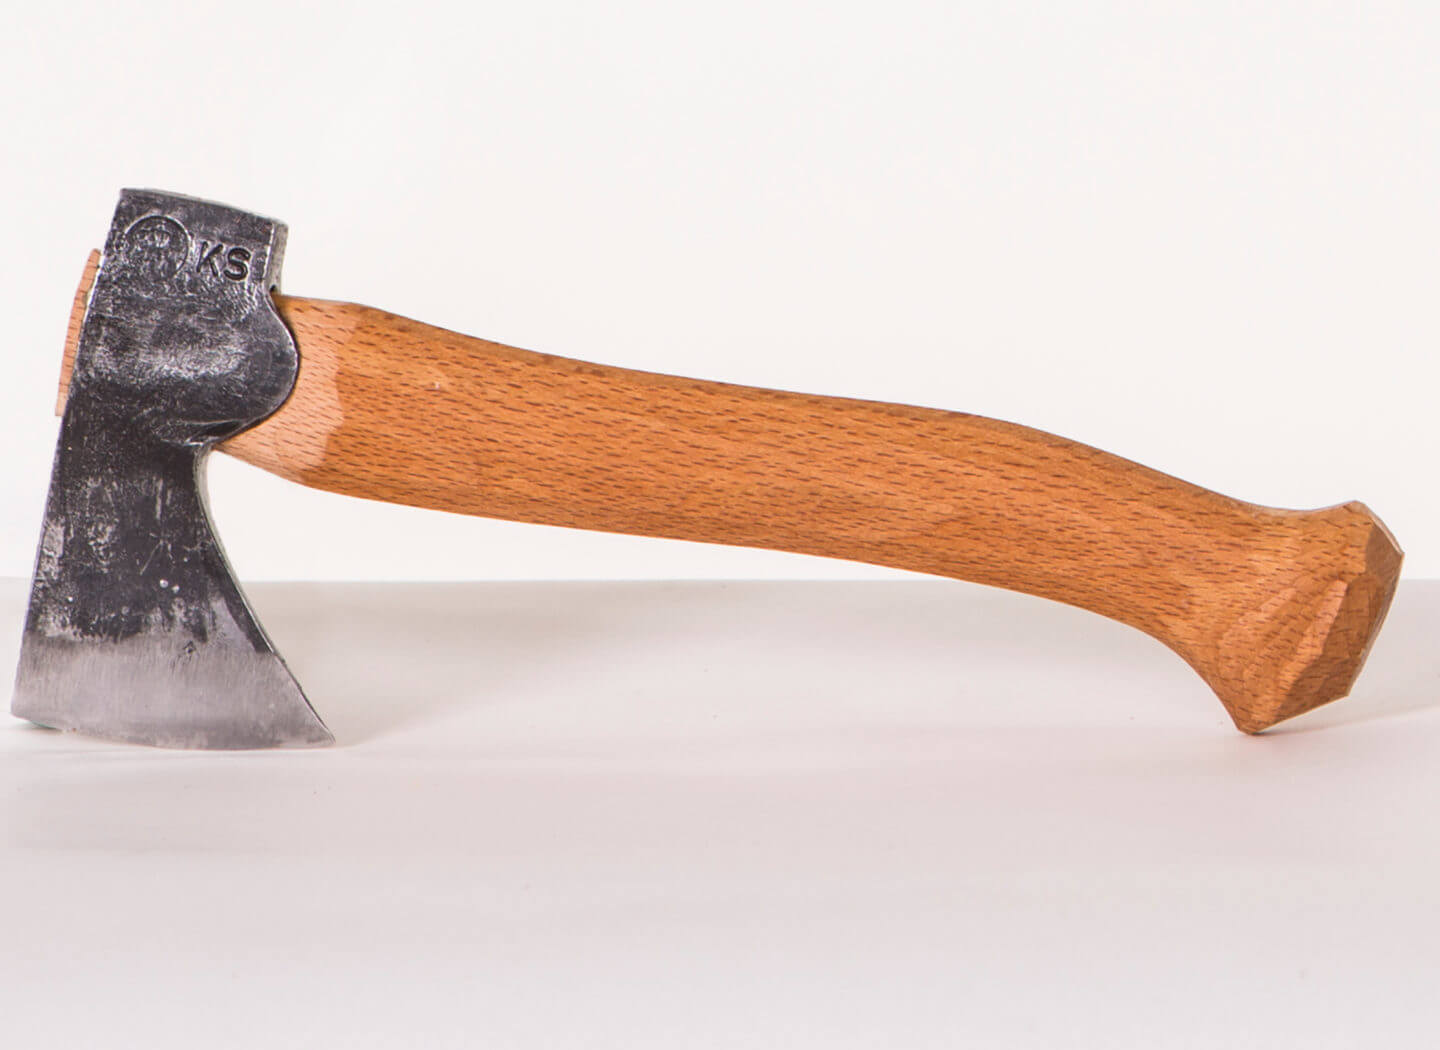 473-R-small-carving-hatchet.jpg